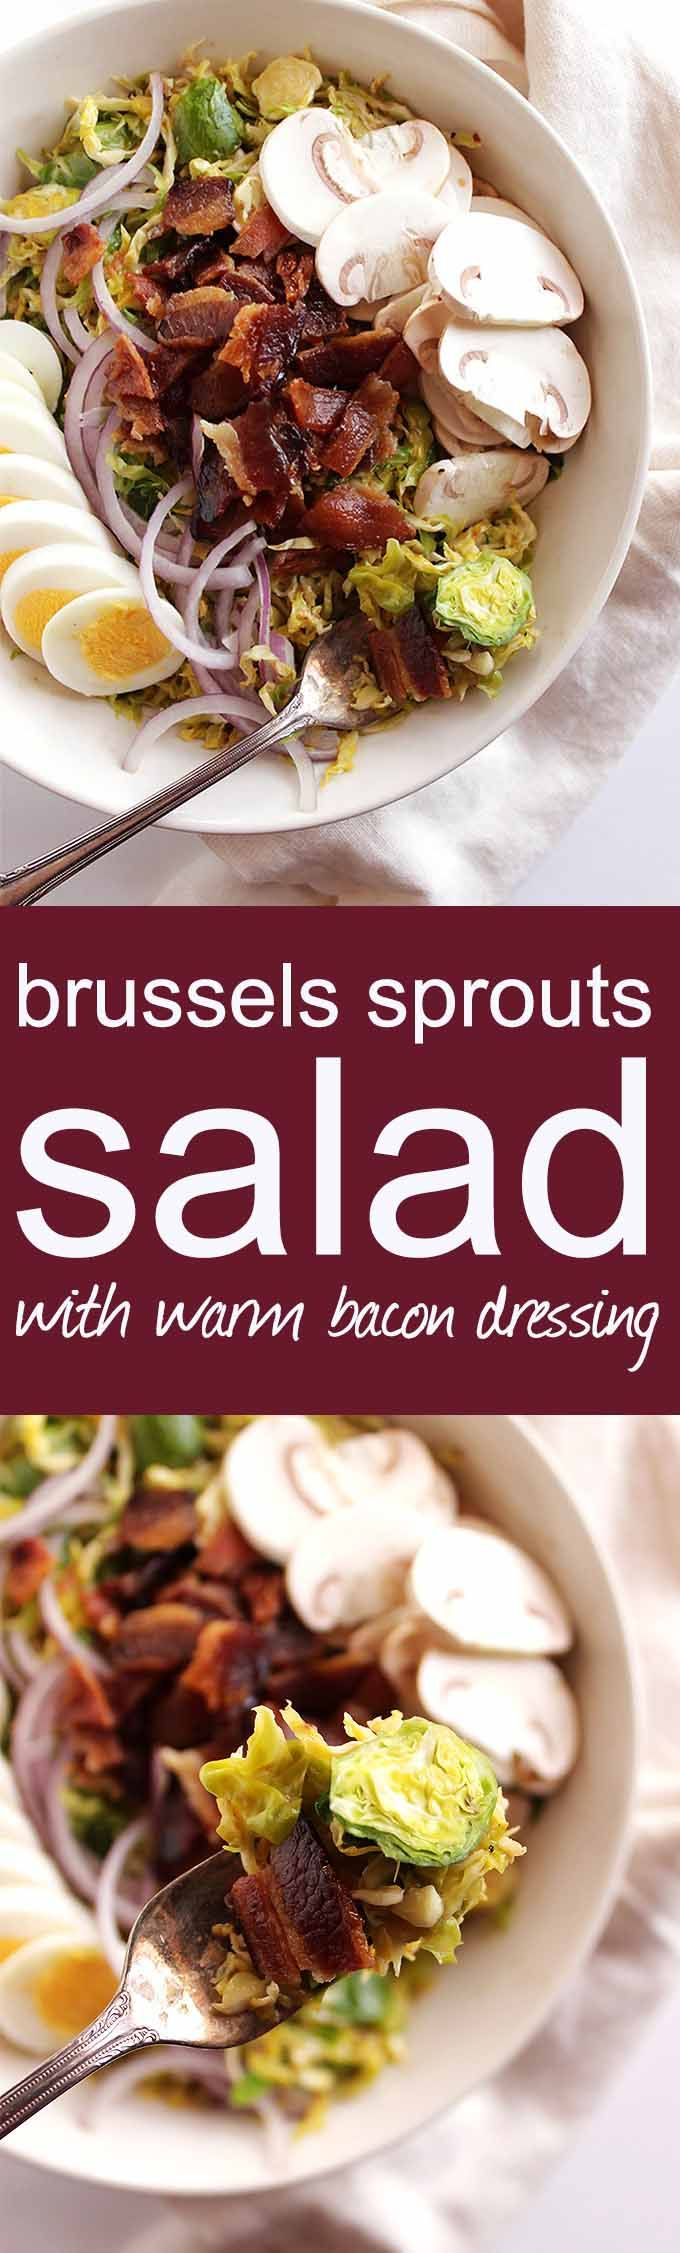 Brussels Sprouts Salad with Warm Bacon Dressing - Shredded Brussels sprouts tossed an a warm bacon dressing and topped with hard boiled eggs, red onion, sliced mushrooms and BACON! This recipe is perfect as a side or dinner salad. Gluten Free/Dairy Free | robustrecipes.com